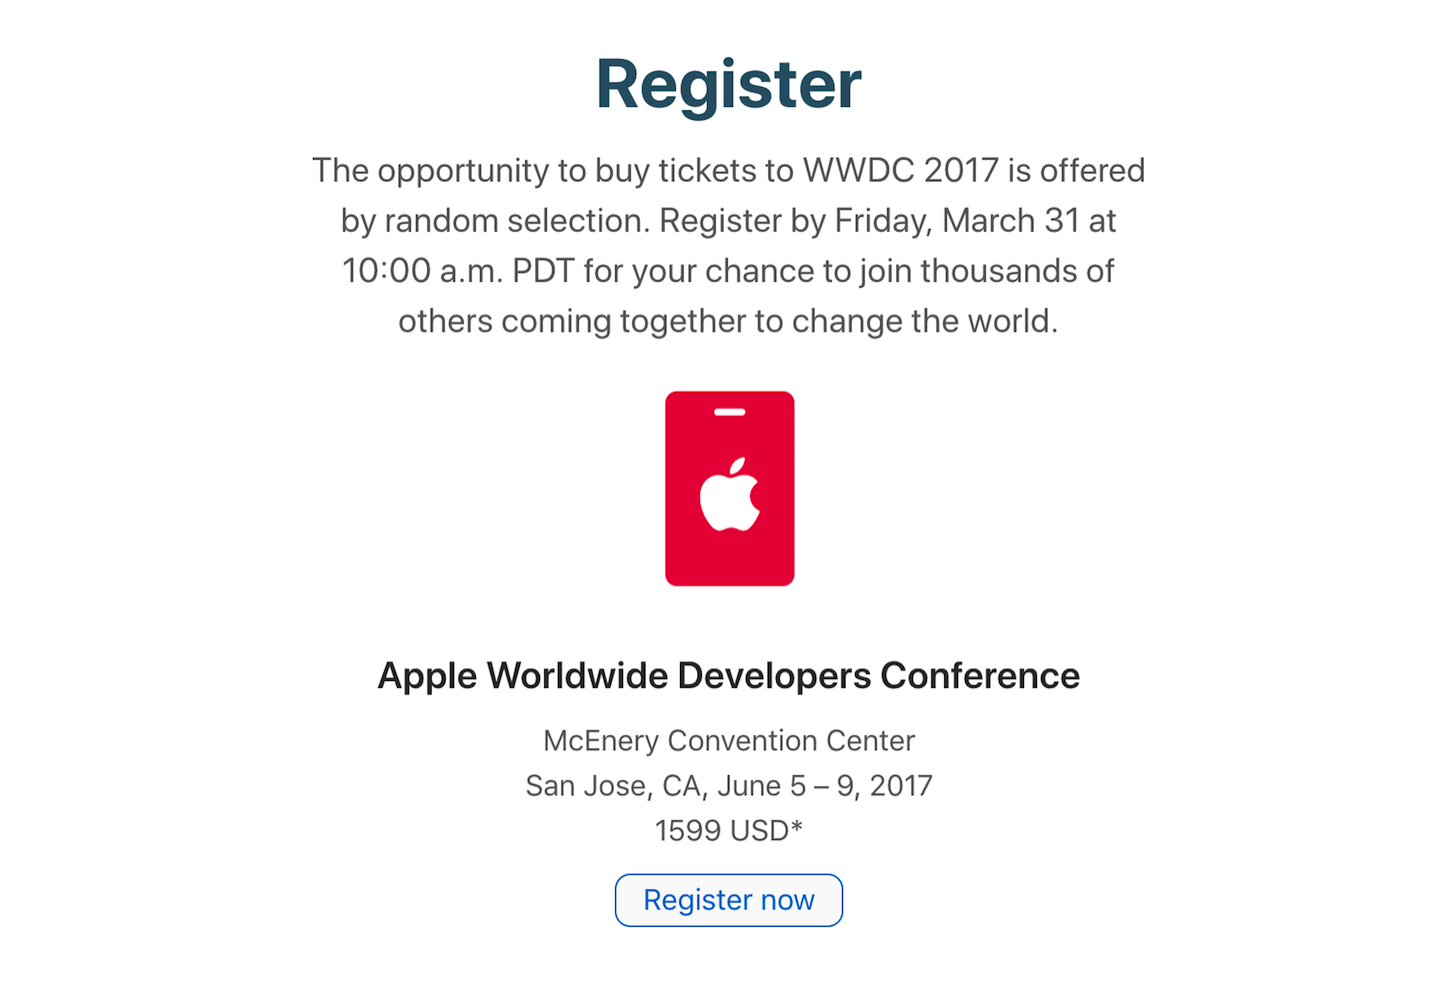 Register now for WWDC2017